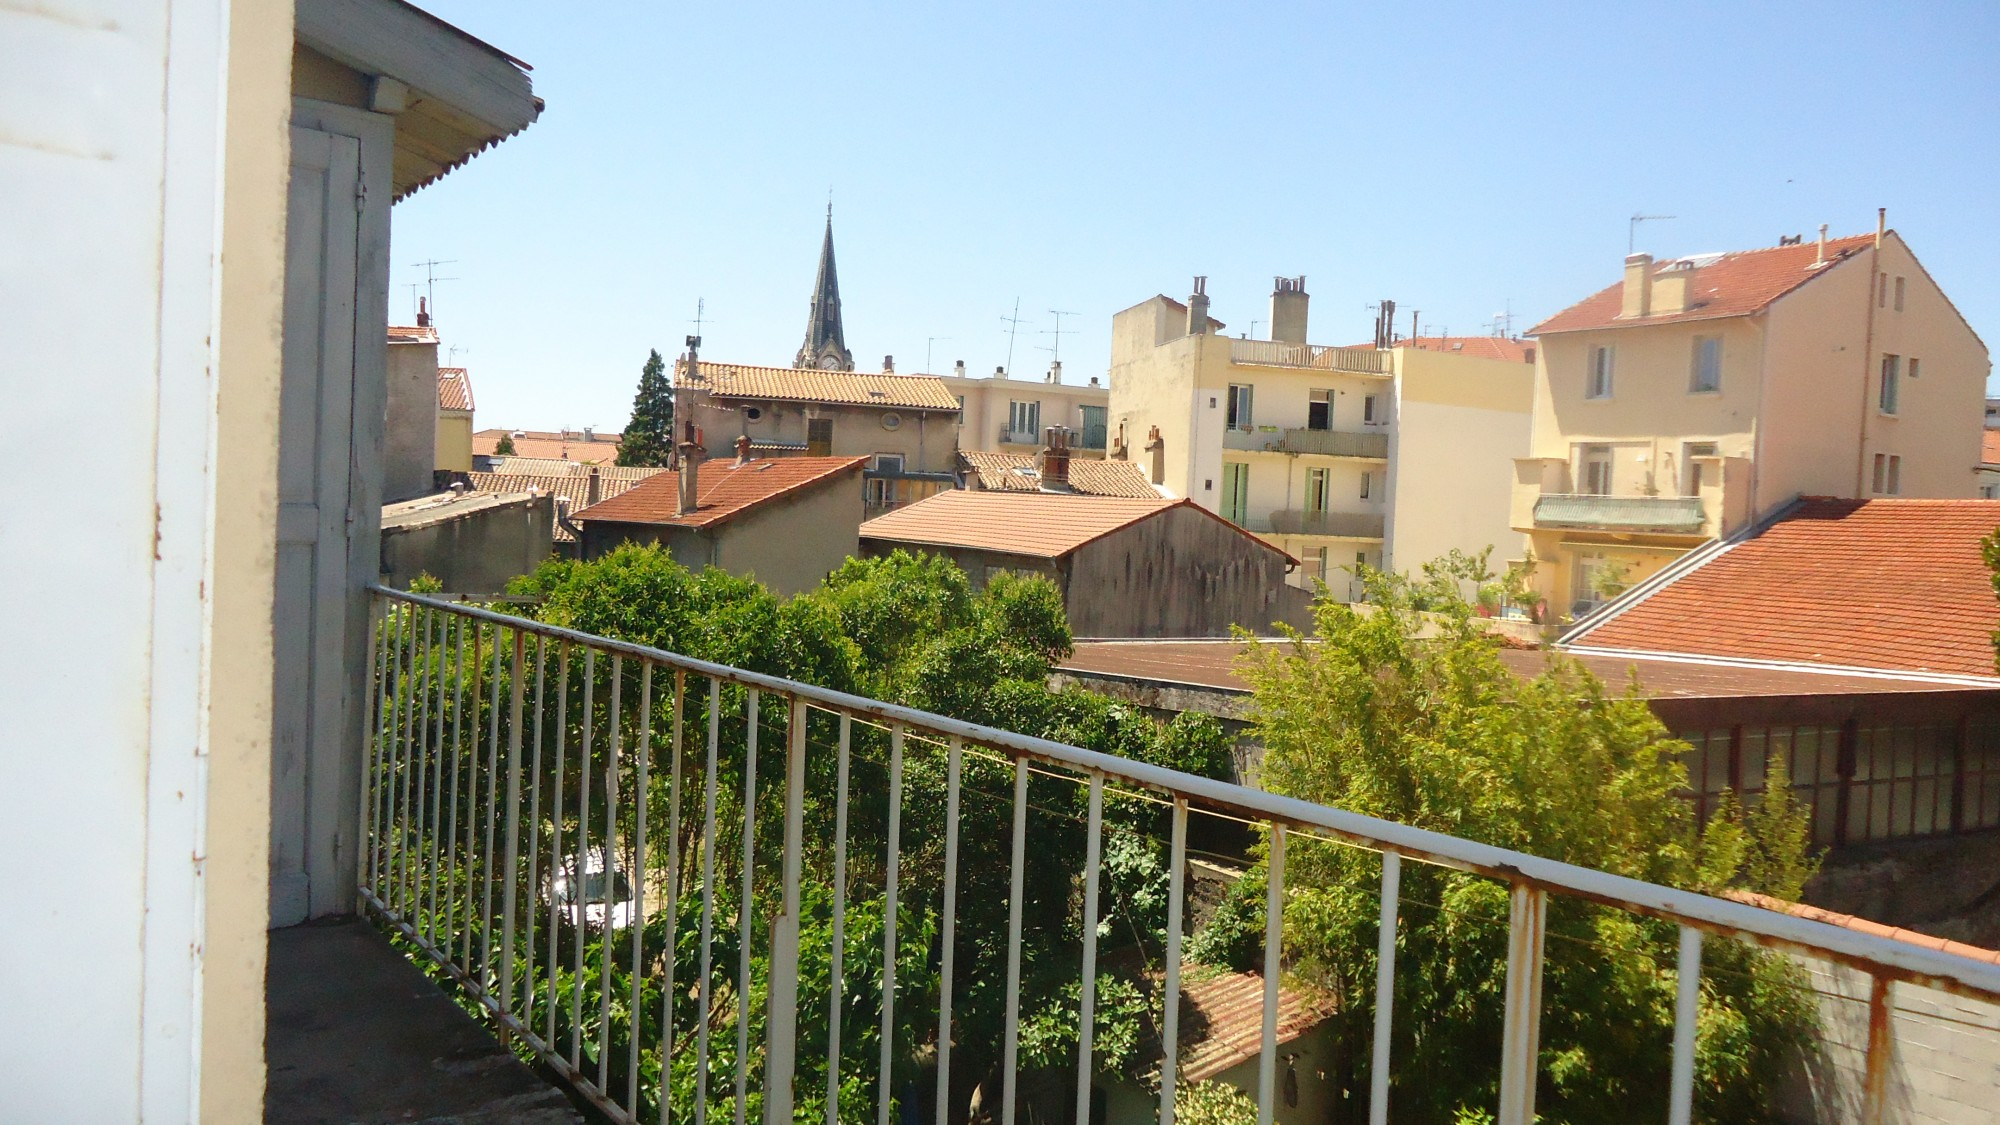 Location t4 proche place lamartine valence location for Agence immobiliere valence